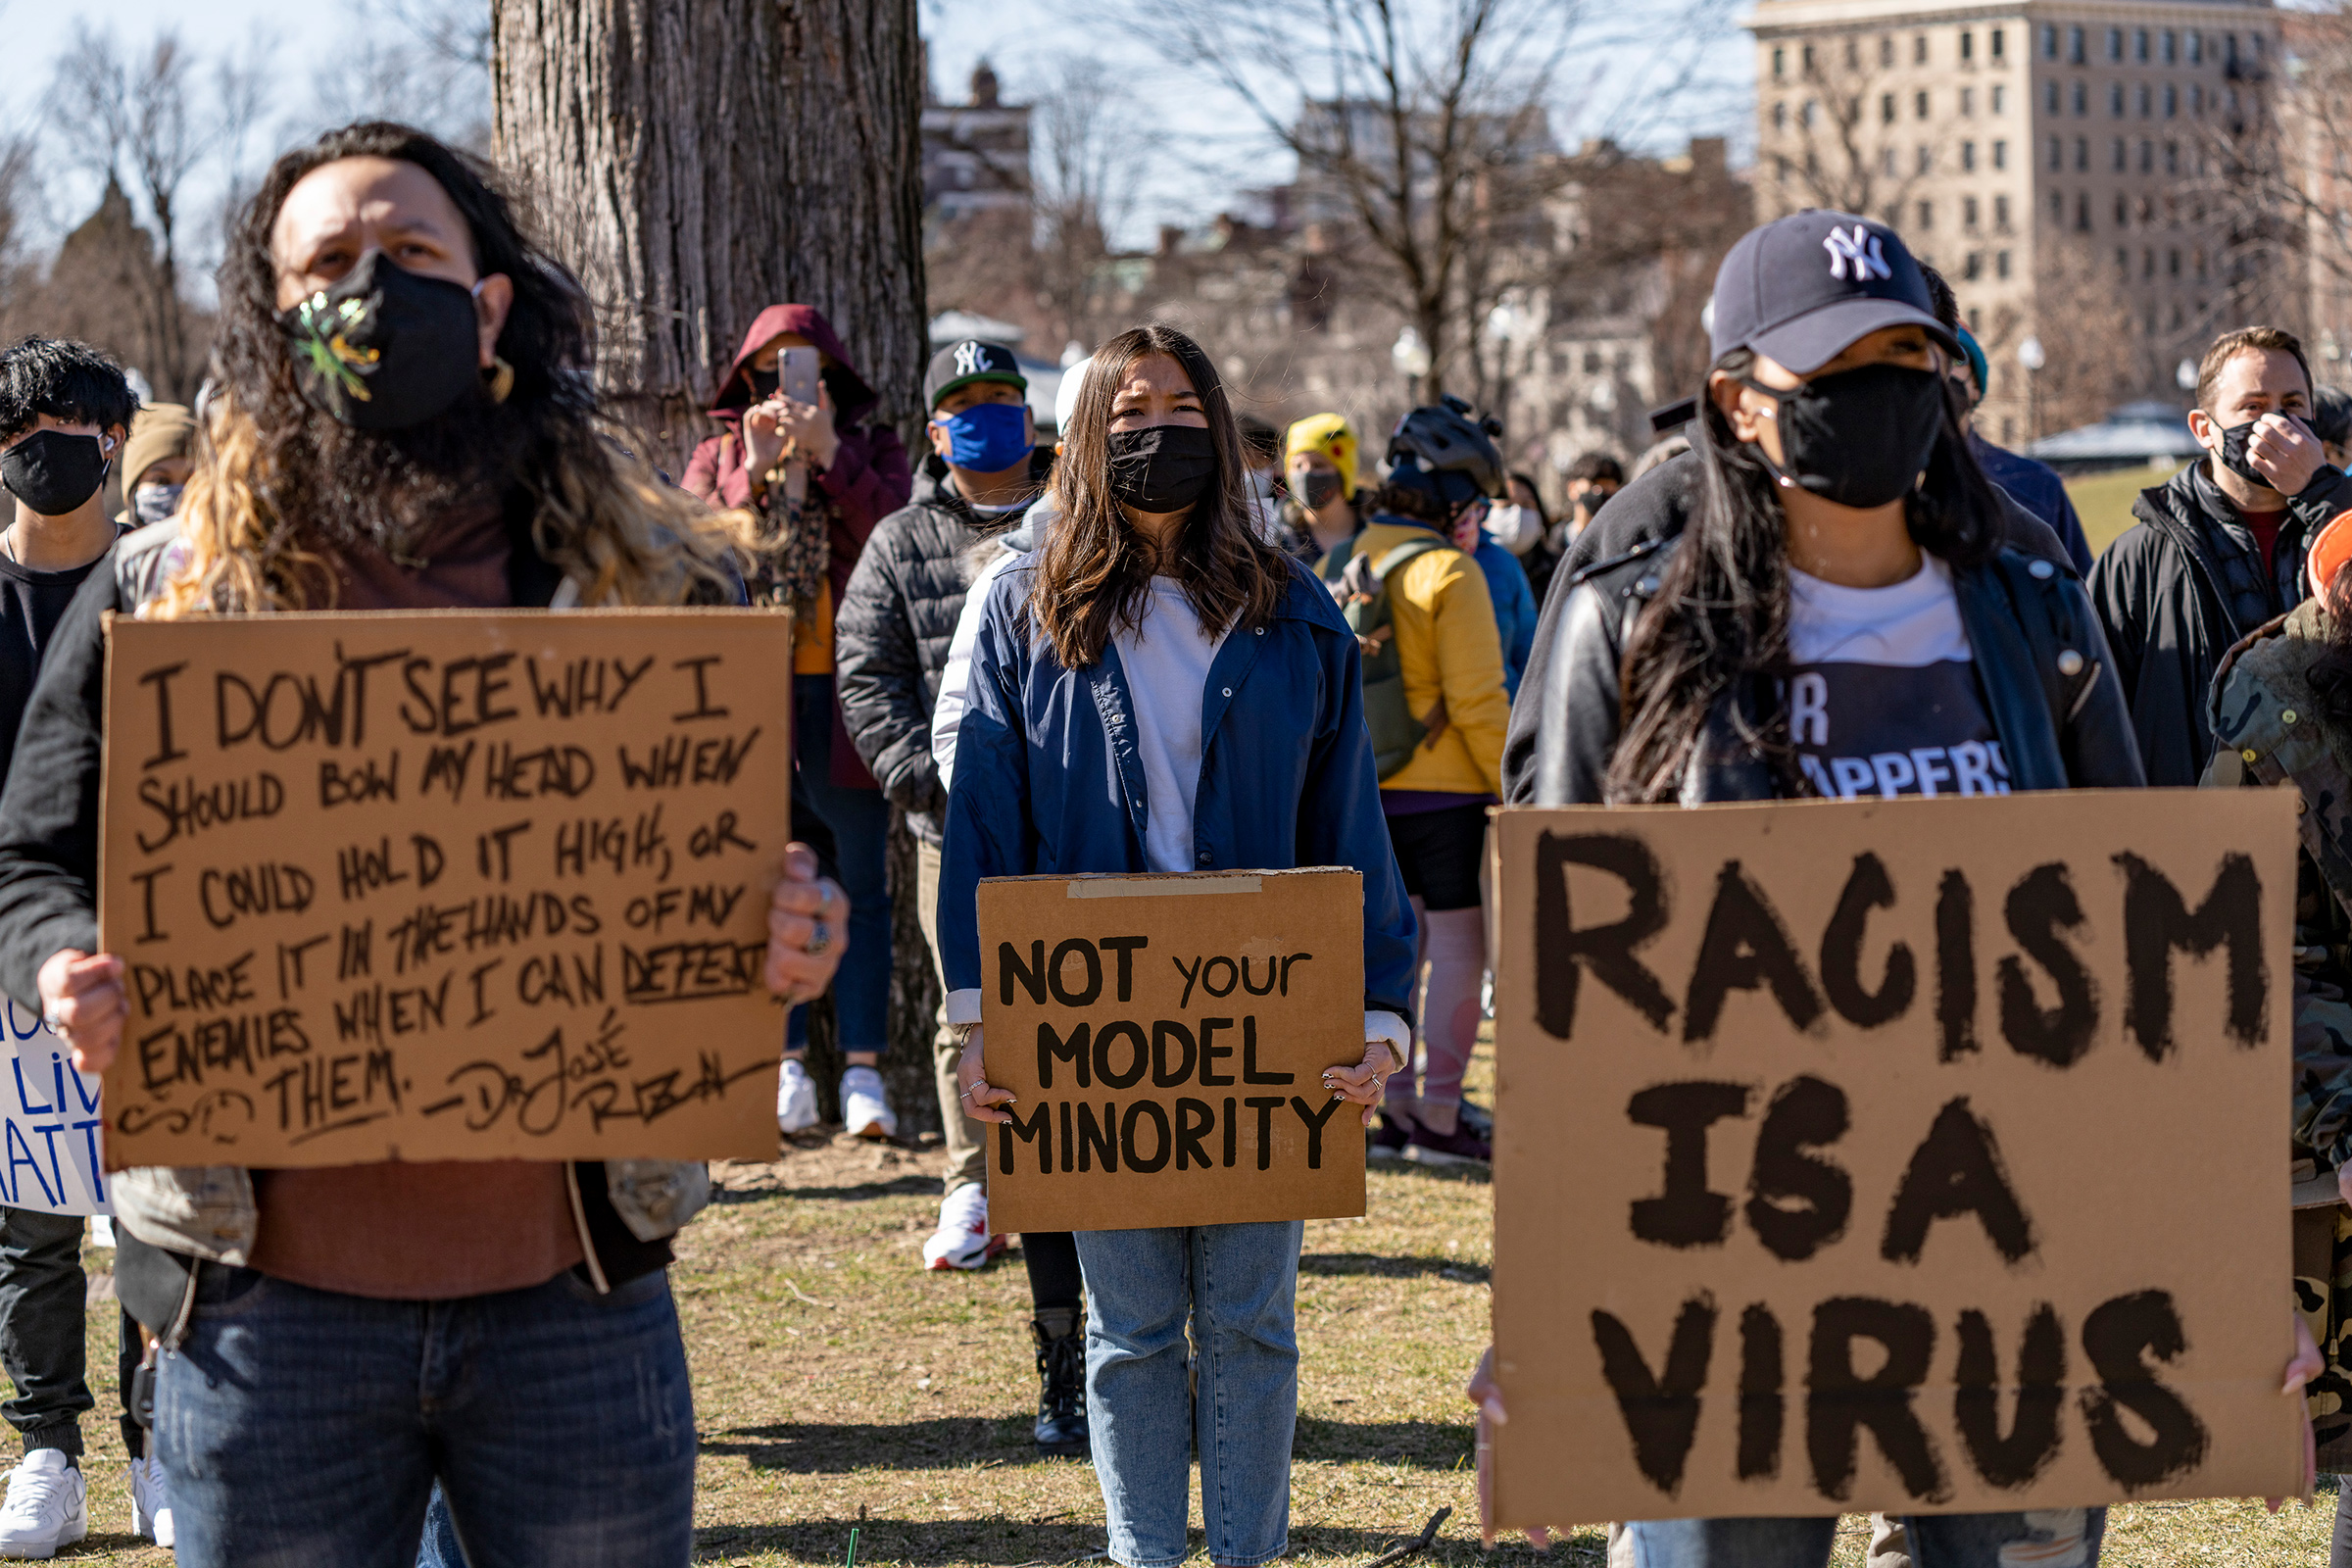 Demonstrators rally against anti-Asian violence and hate crimes in Boston on March 13